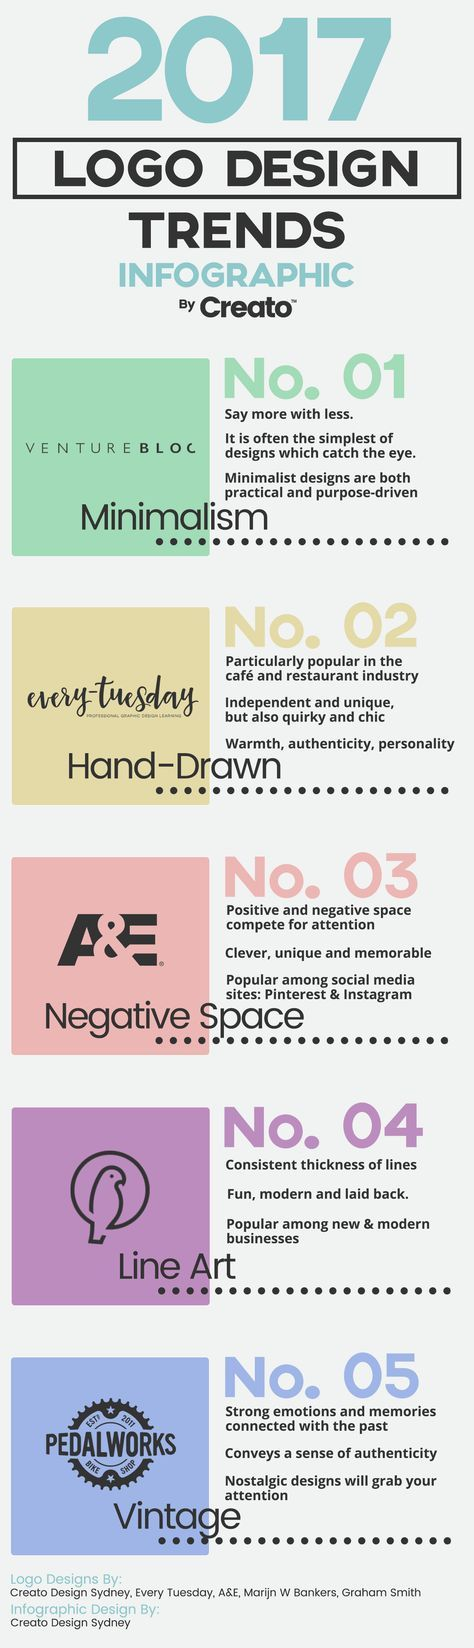 Design Inspiration // 2017 Logo Design trends by https://www.creato.com.au